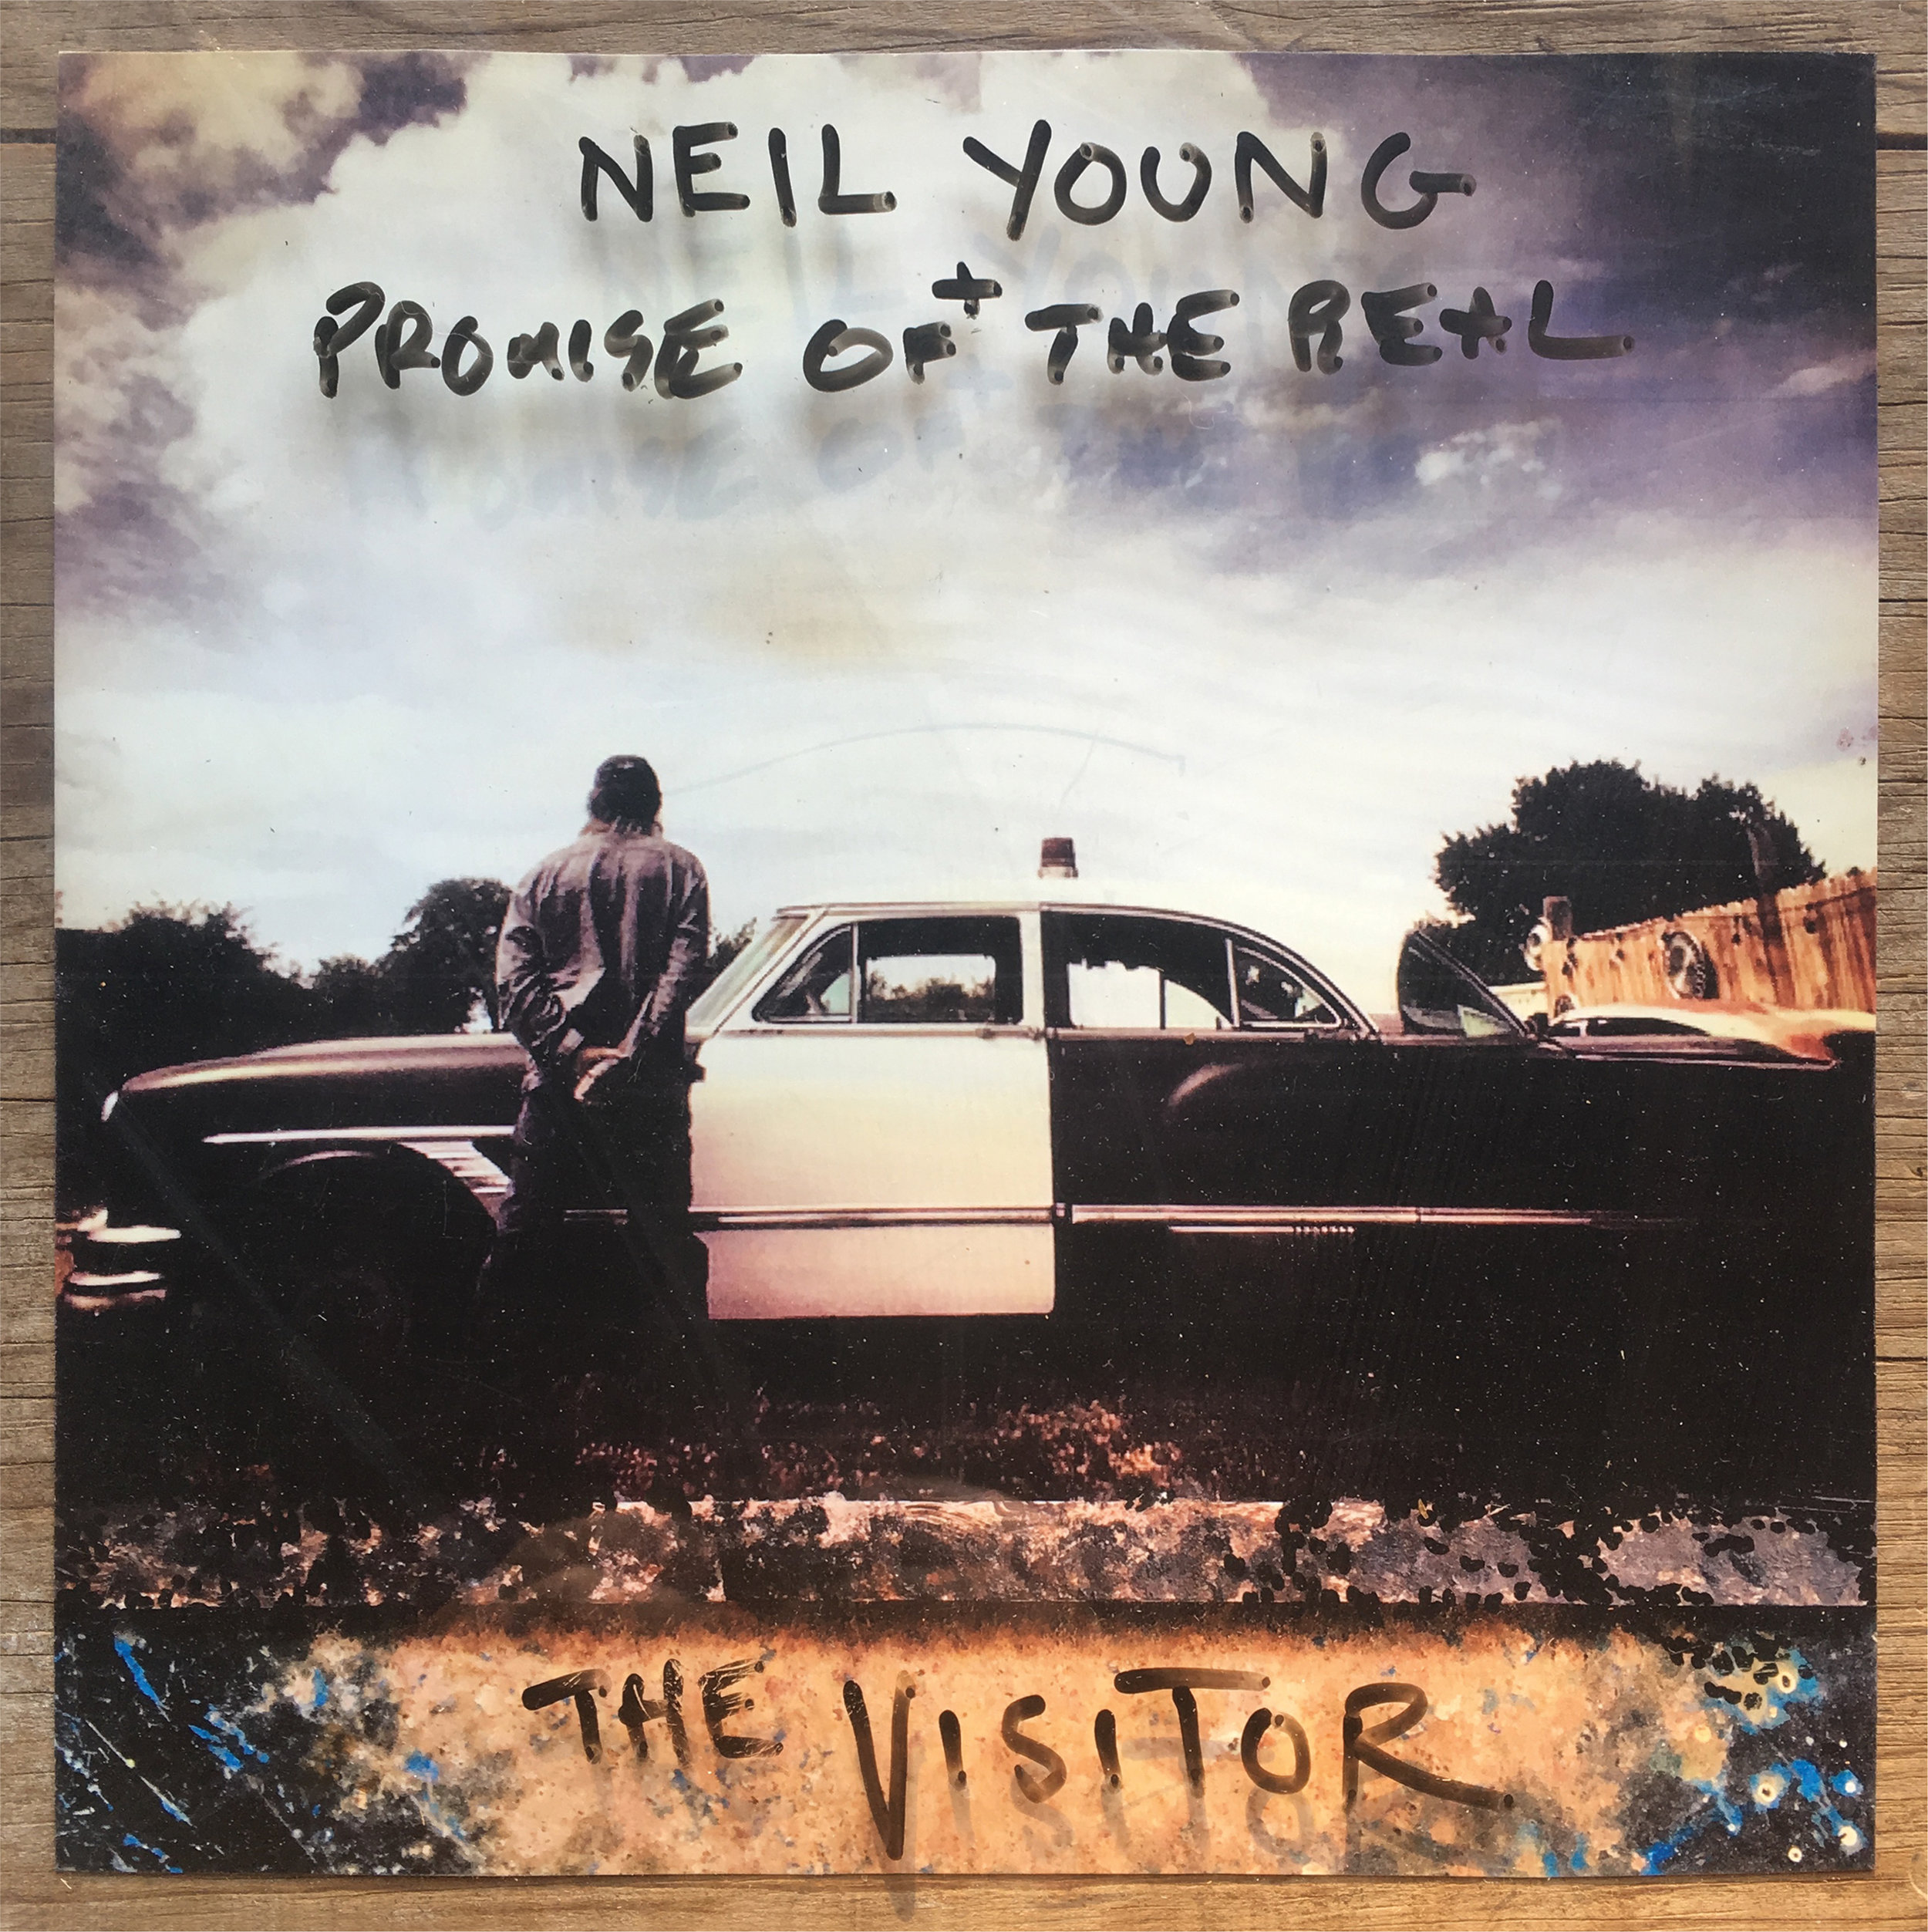 Neil Young The Visitor artwork